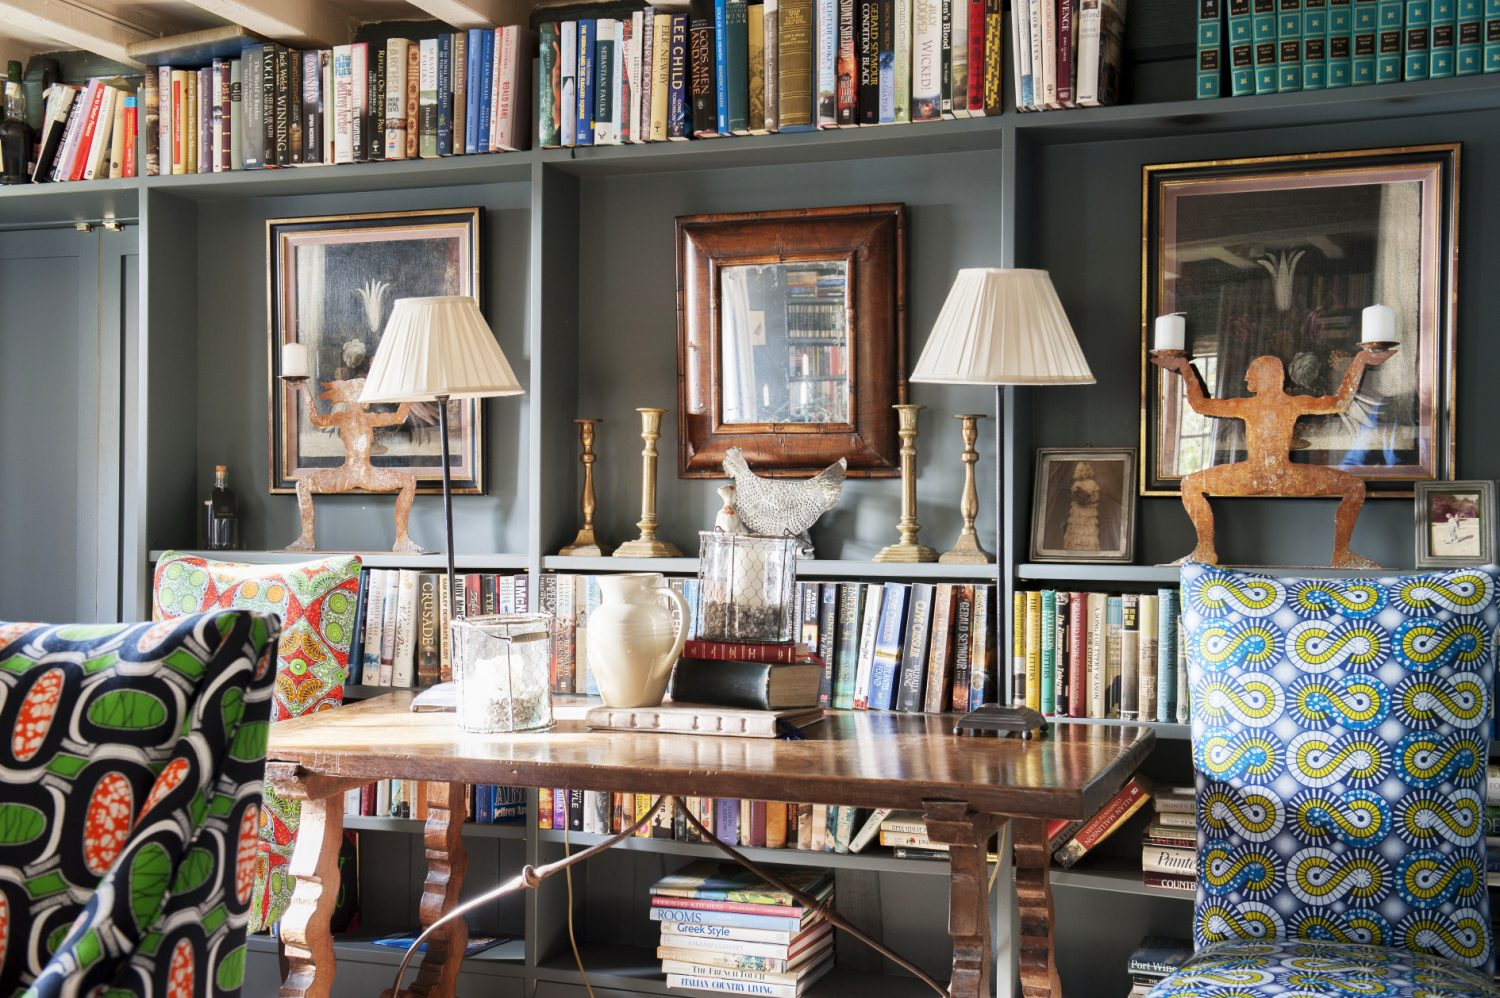 In the dining room the walls and bookcases are painted a dark grey – though Ally has managed to keep the room from feeling dark and oppressive by painting the ceiling and its beams off-white